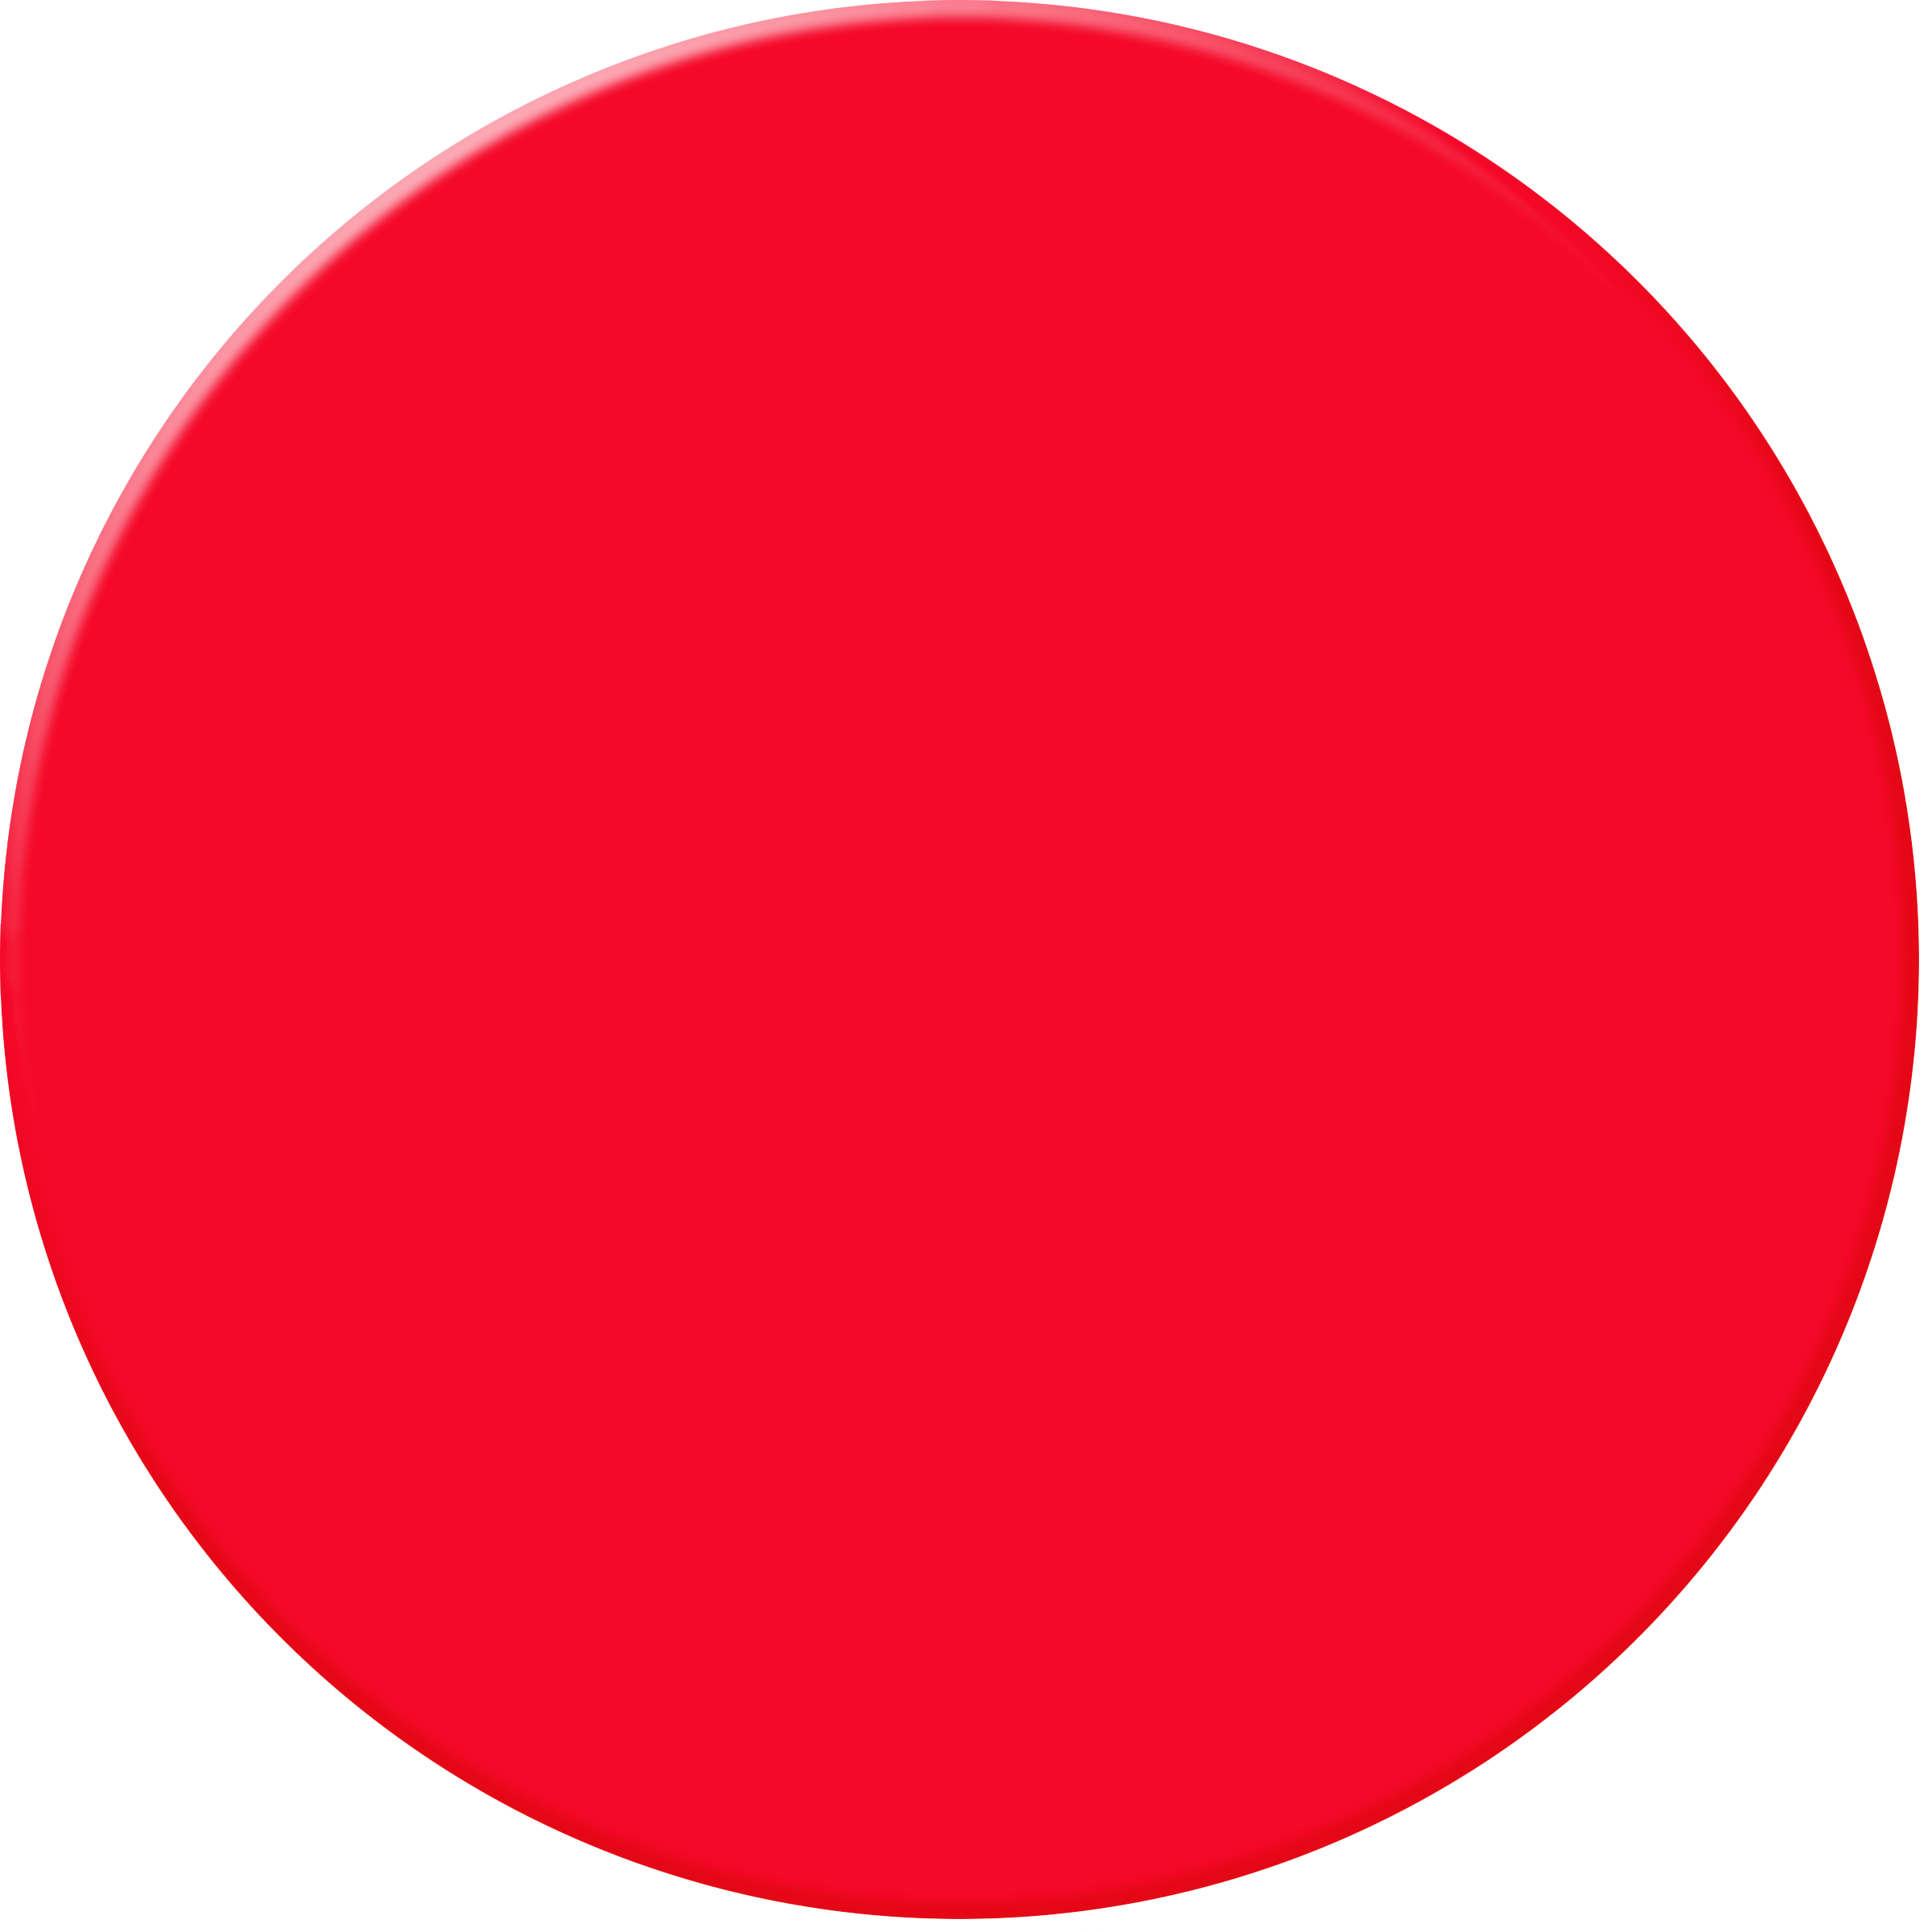 Red ball png. Free images at clker